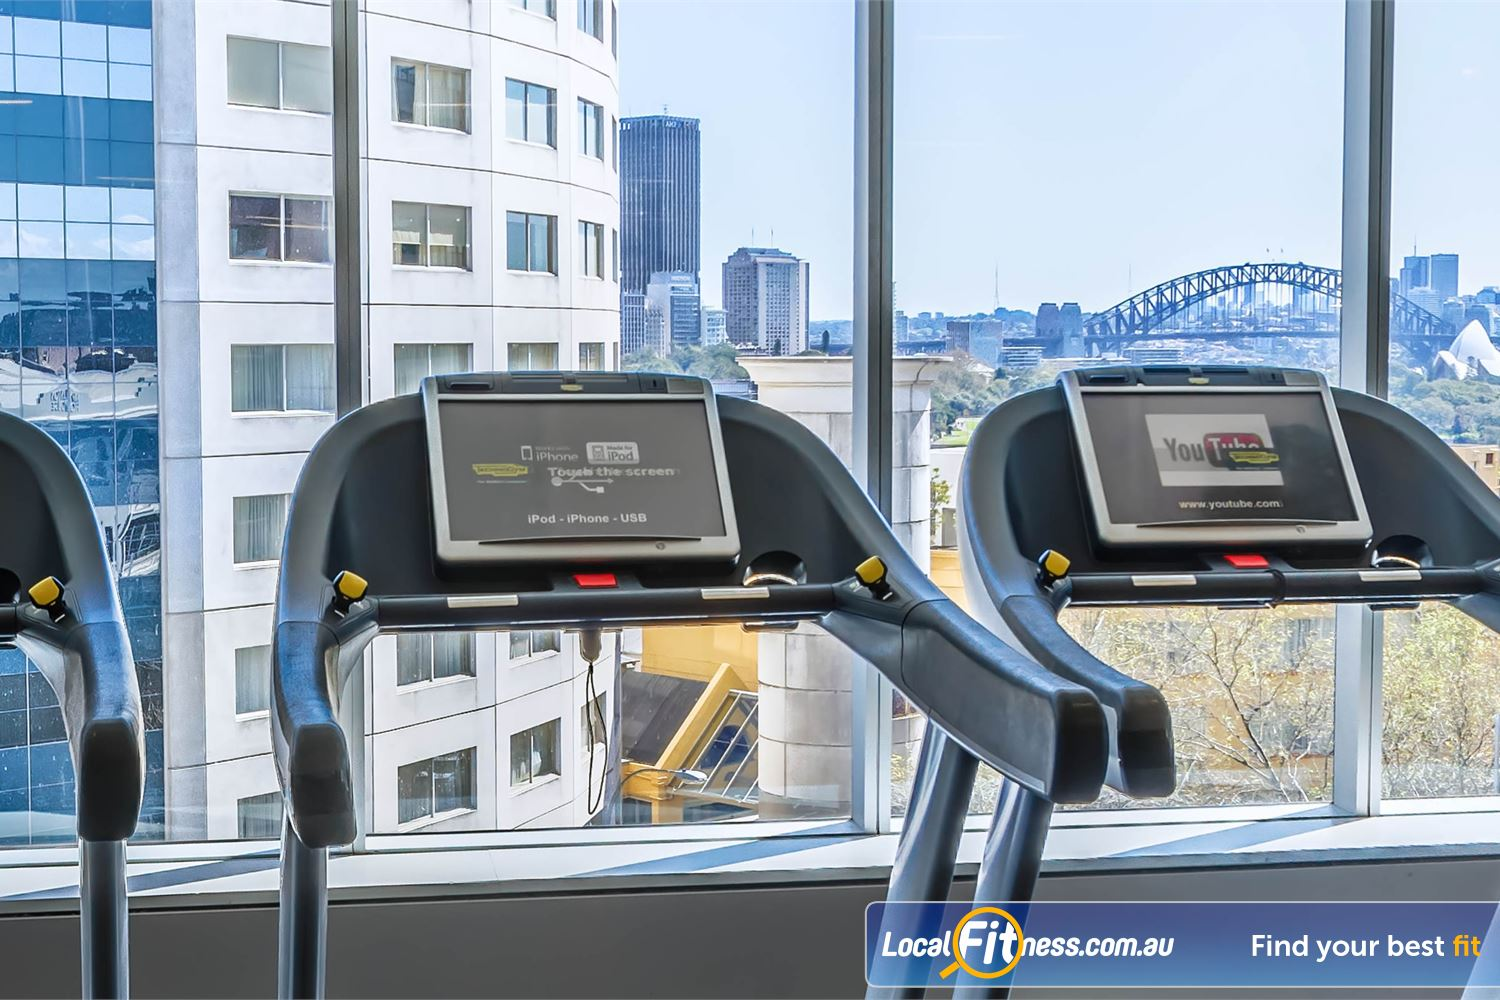 Fitness First Platinum Kings Cross Near Rushcutters Bay Bright and spacious workout area with views of Sydney Harbour Bridge.